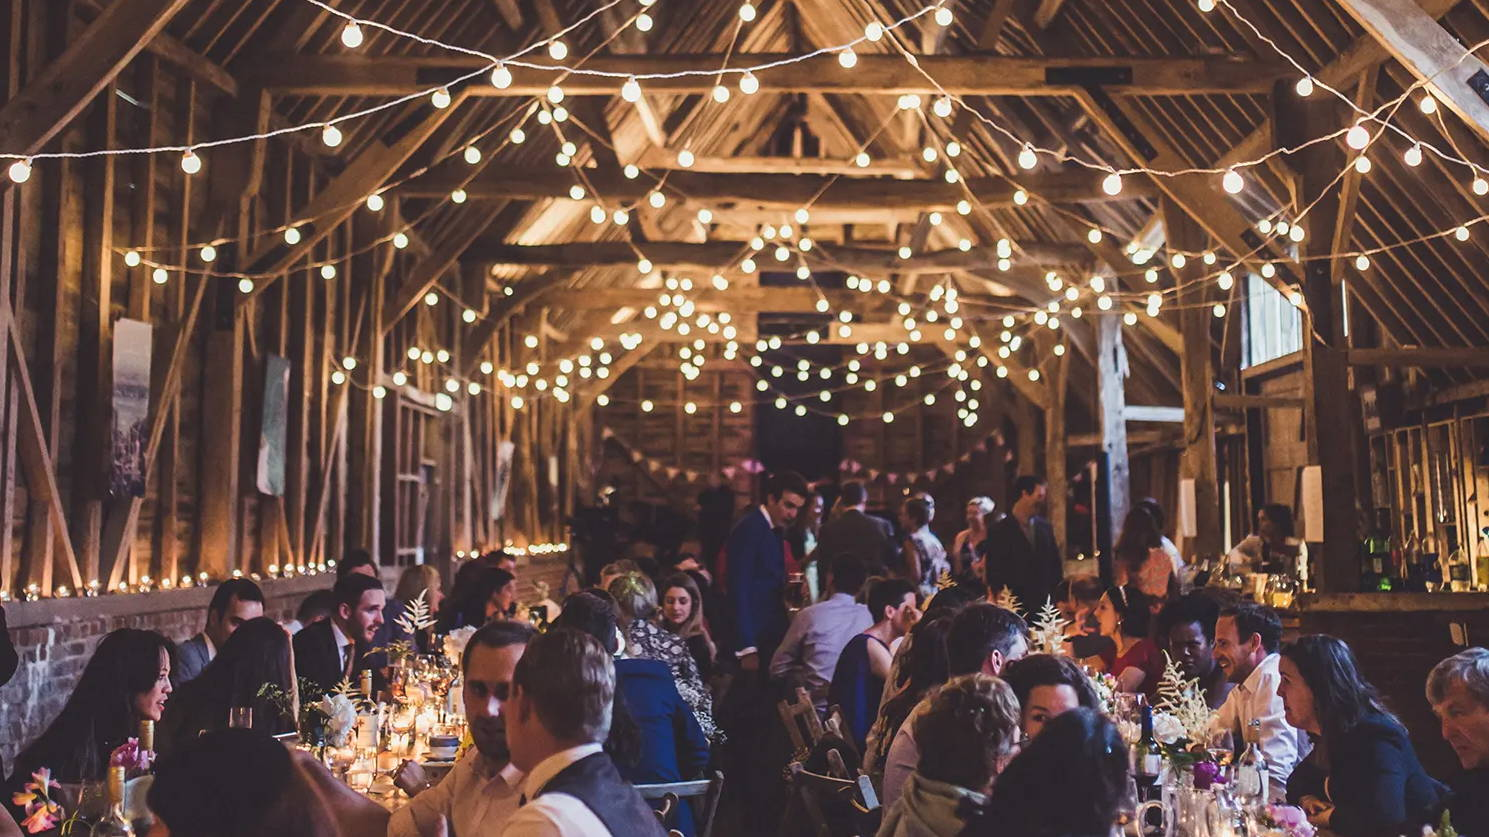 Wedding reception with drop bulb string lights displayed from ceiling